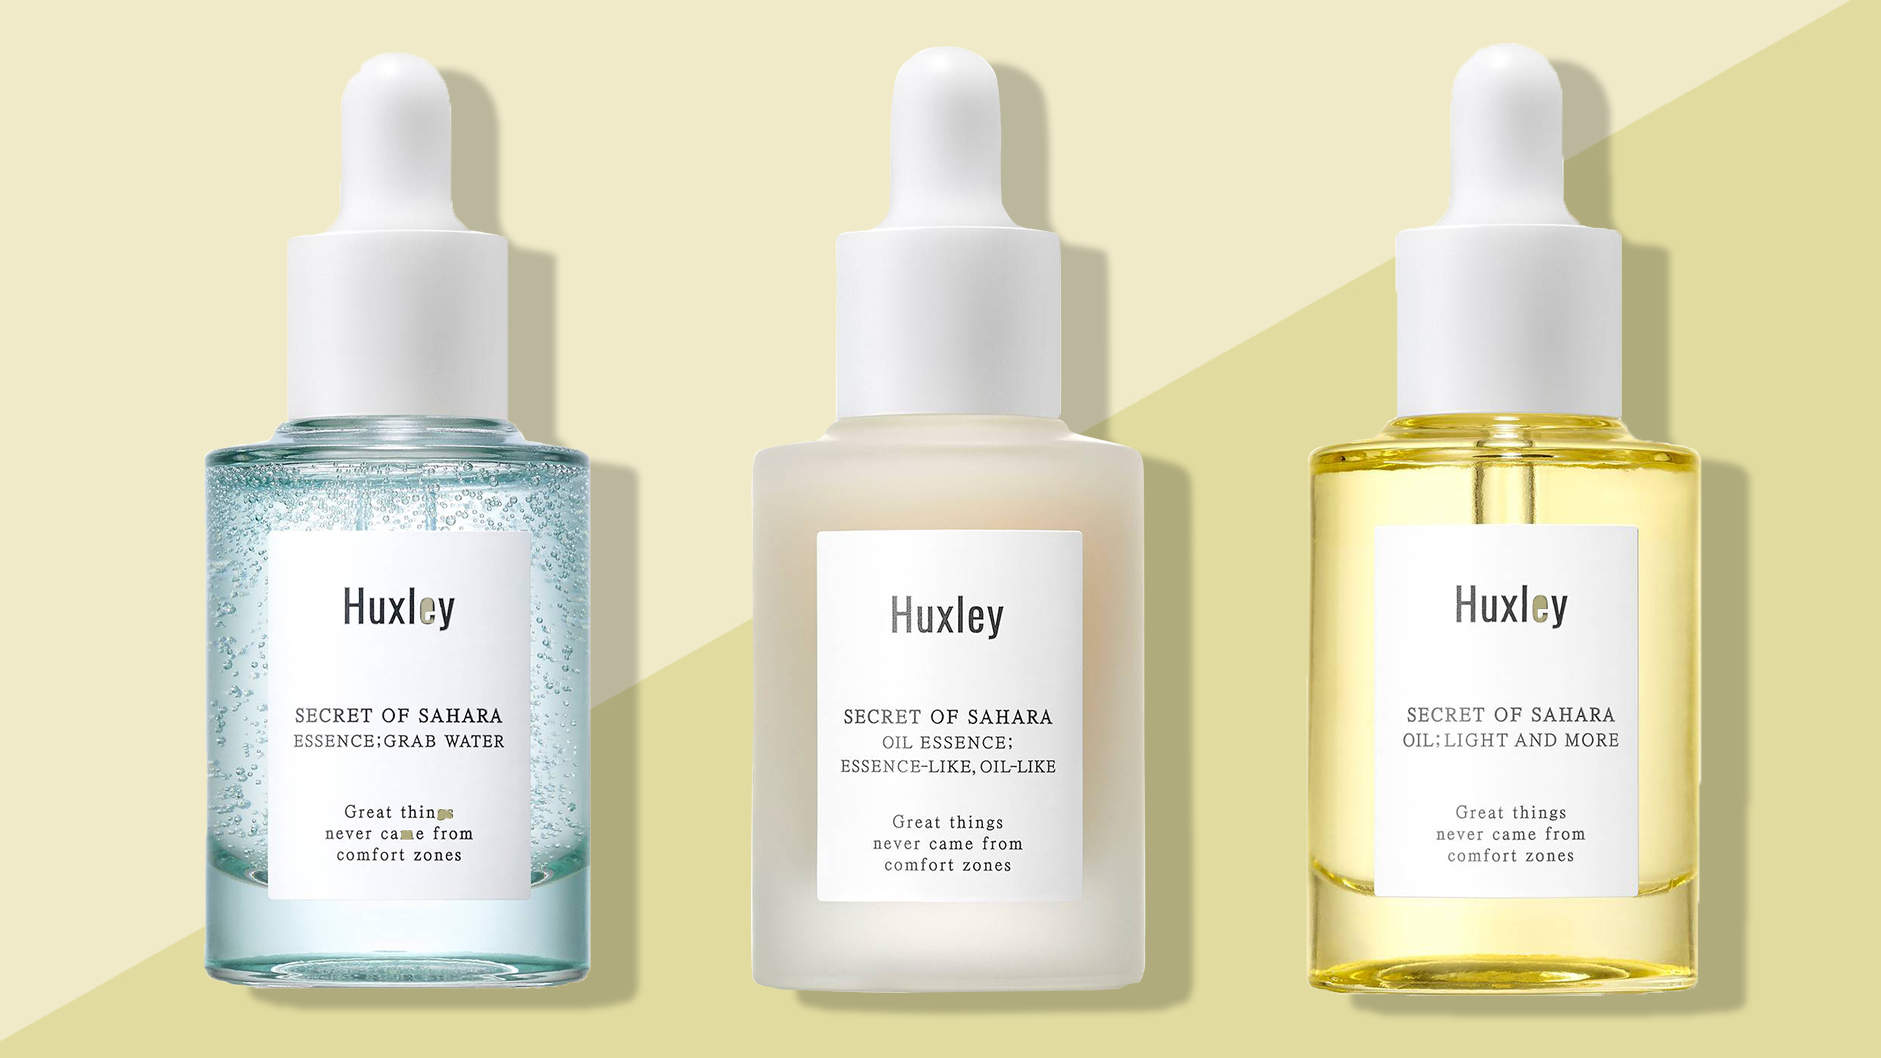 korean beauty products at nordstroms huxley holiday gifts